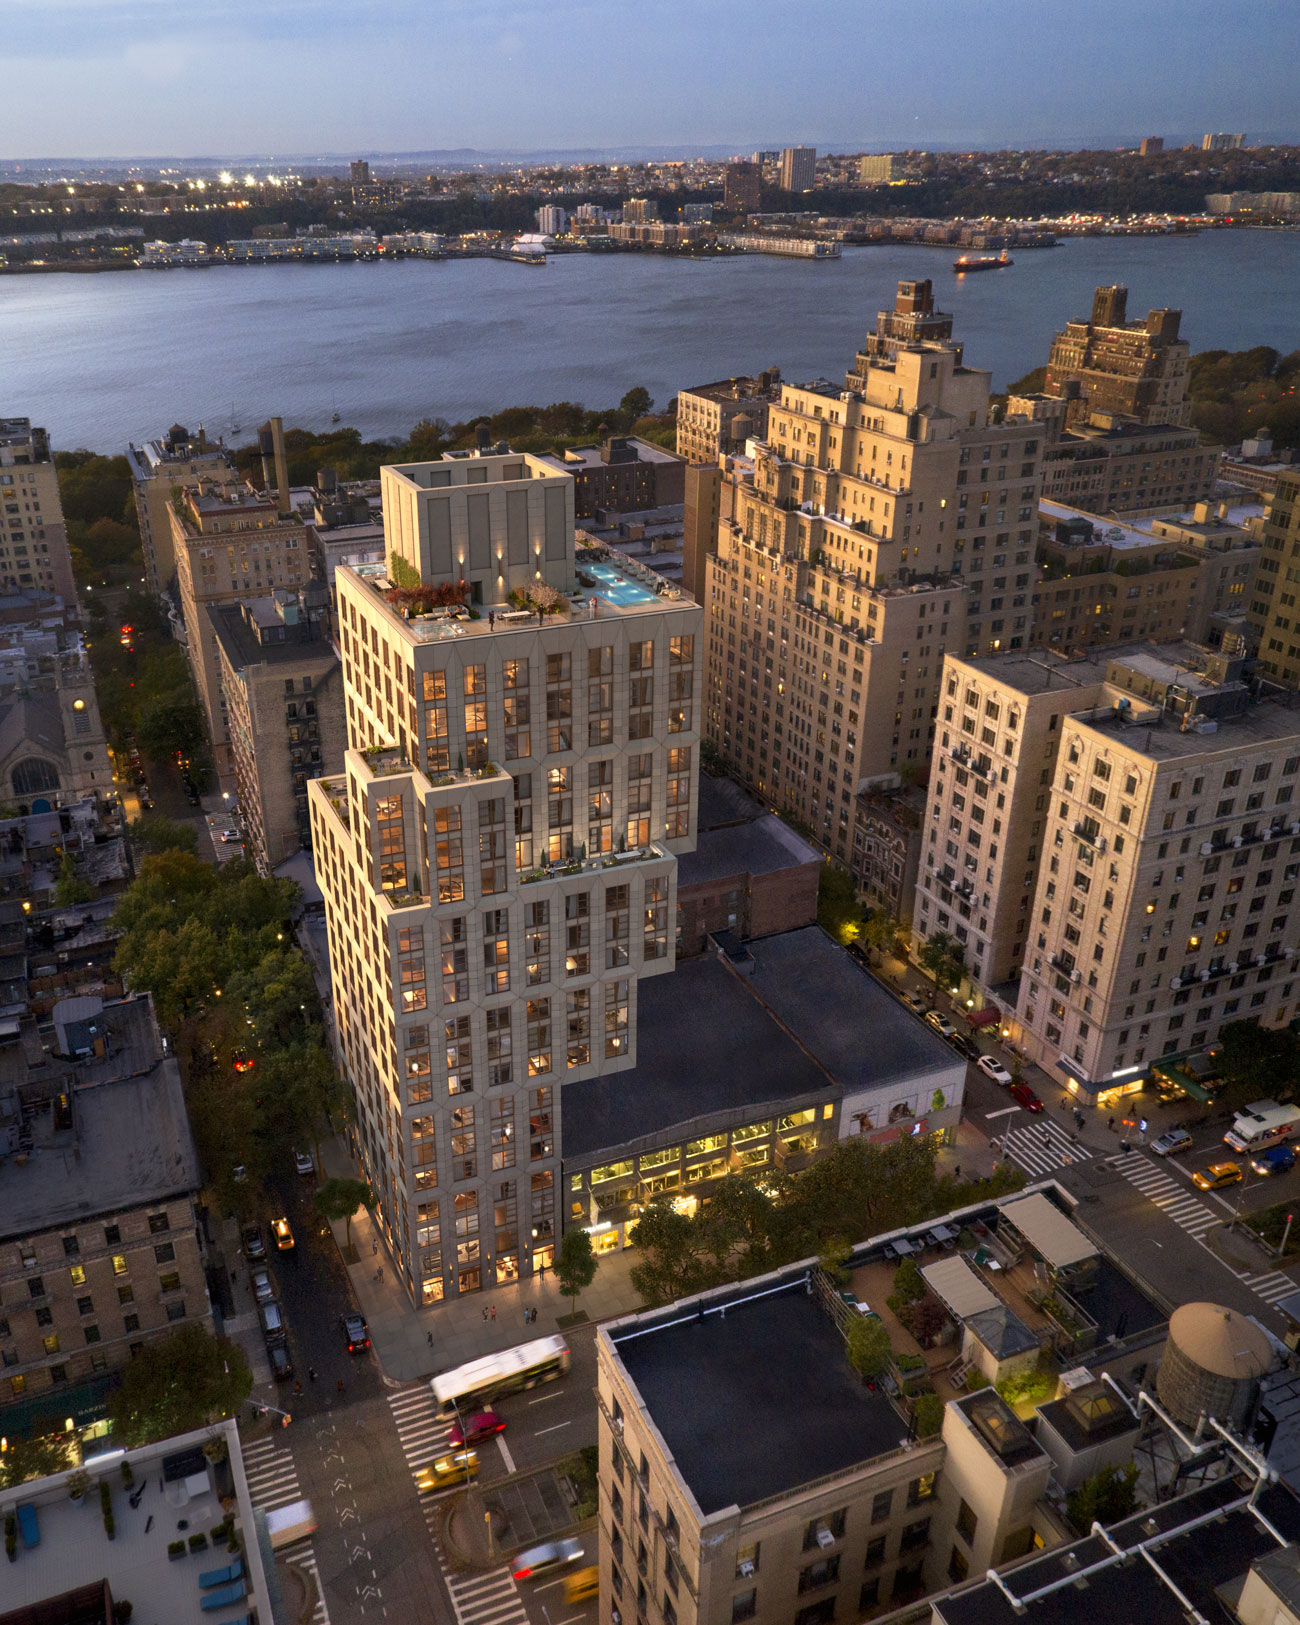 Architectural Rendering of an aerial view of the ERA building project located on the Upper West Side in New York City